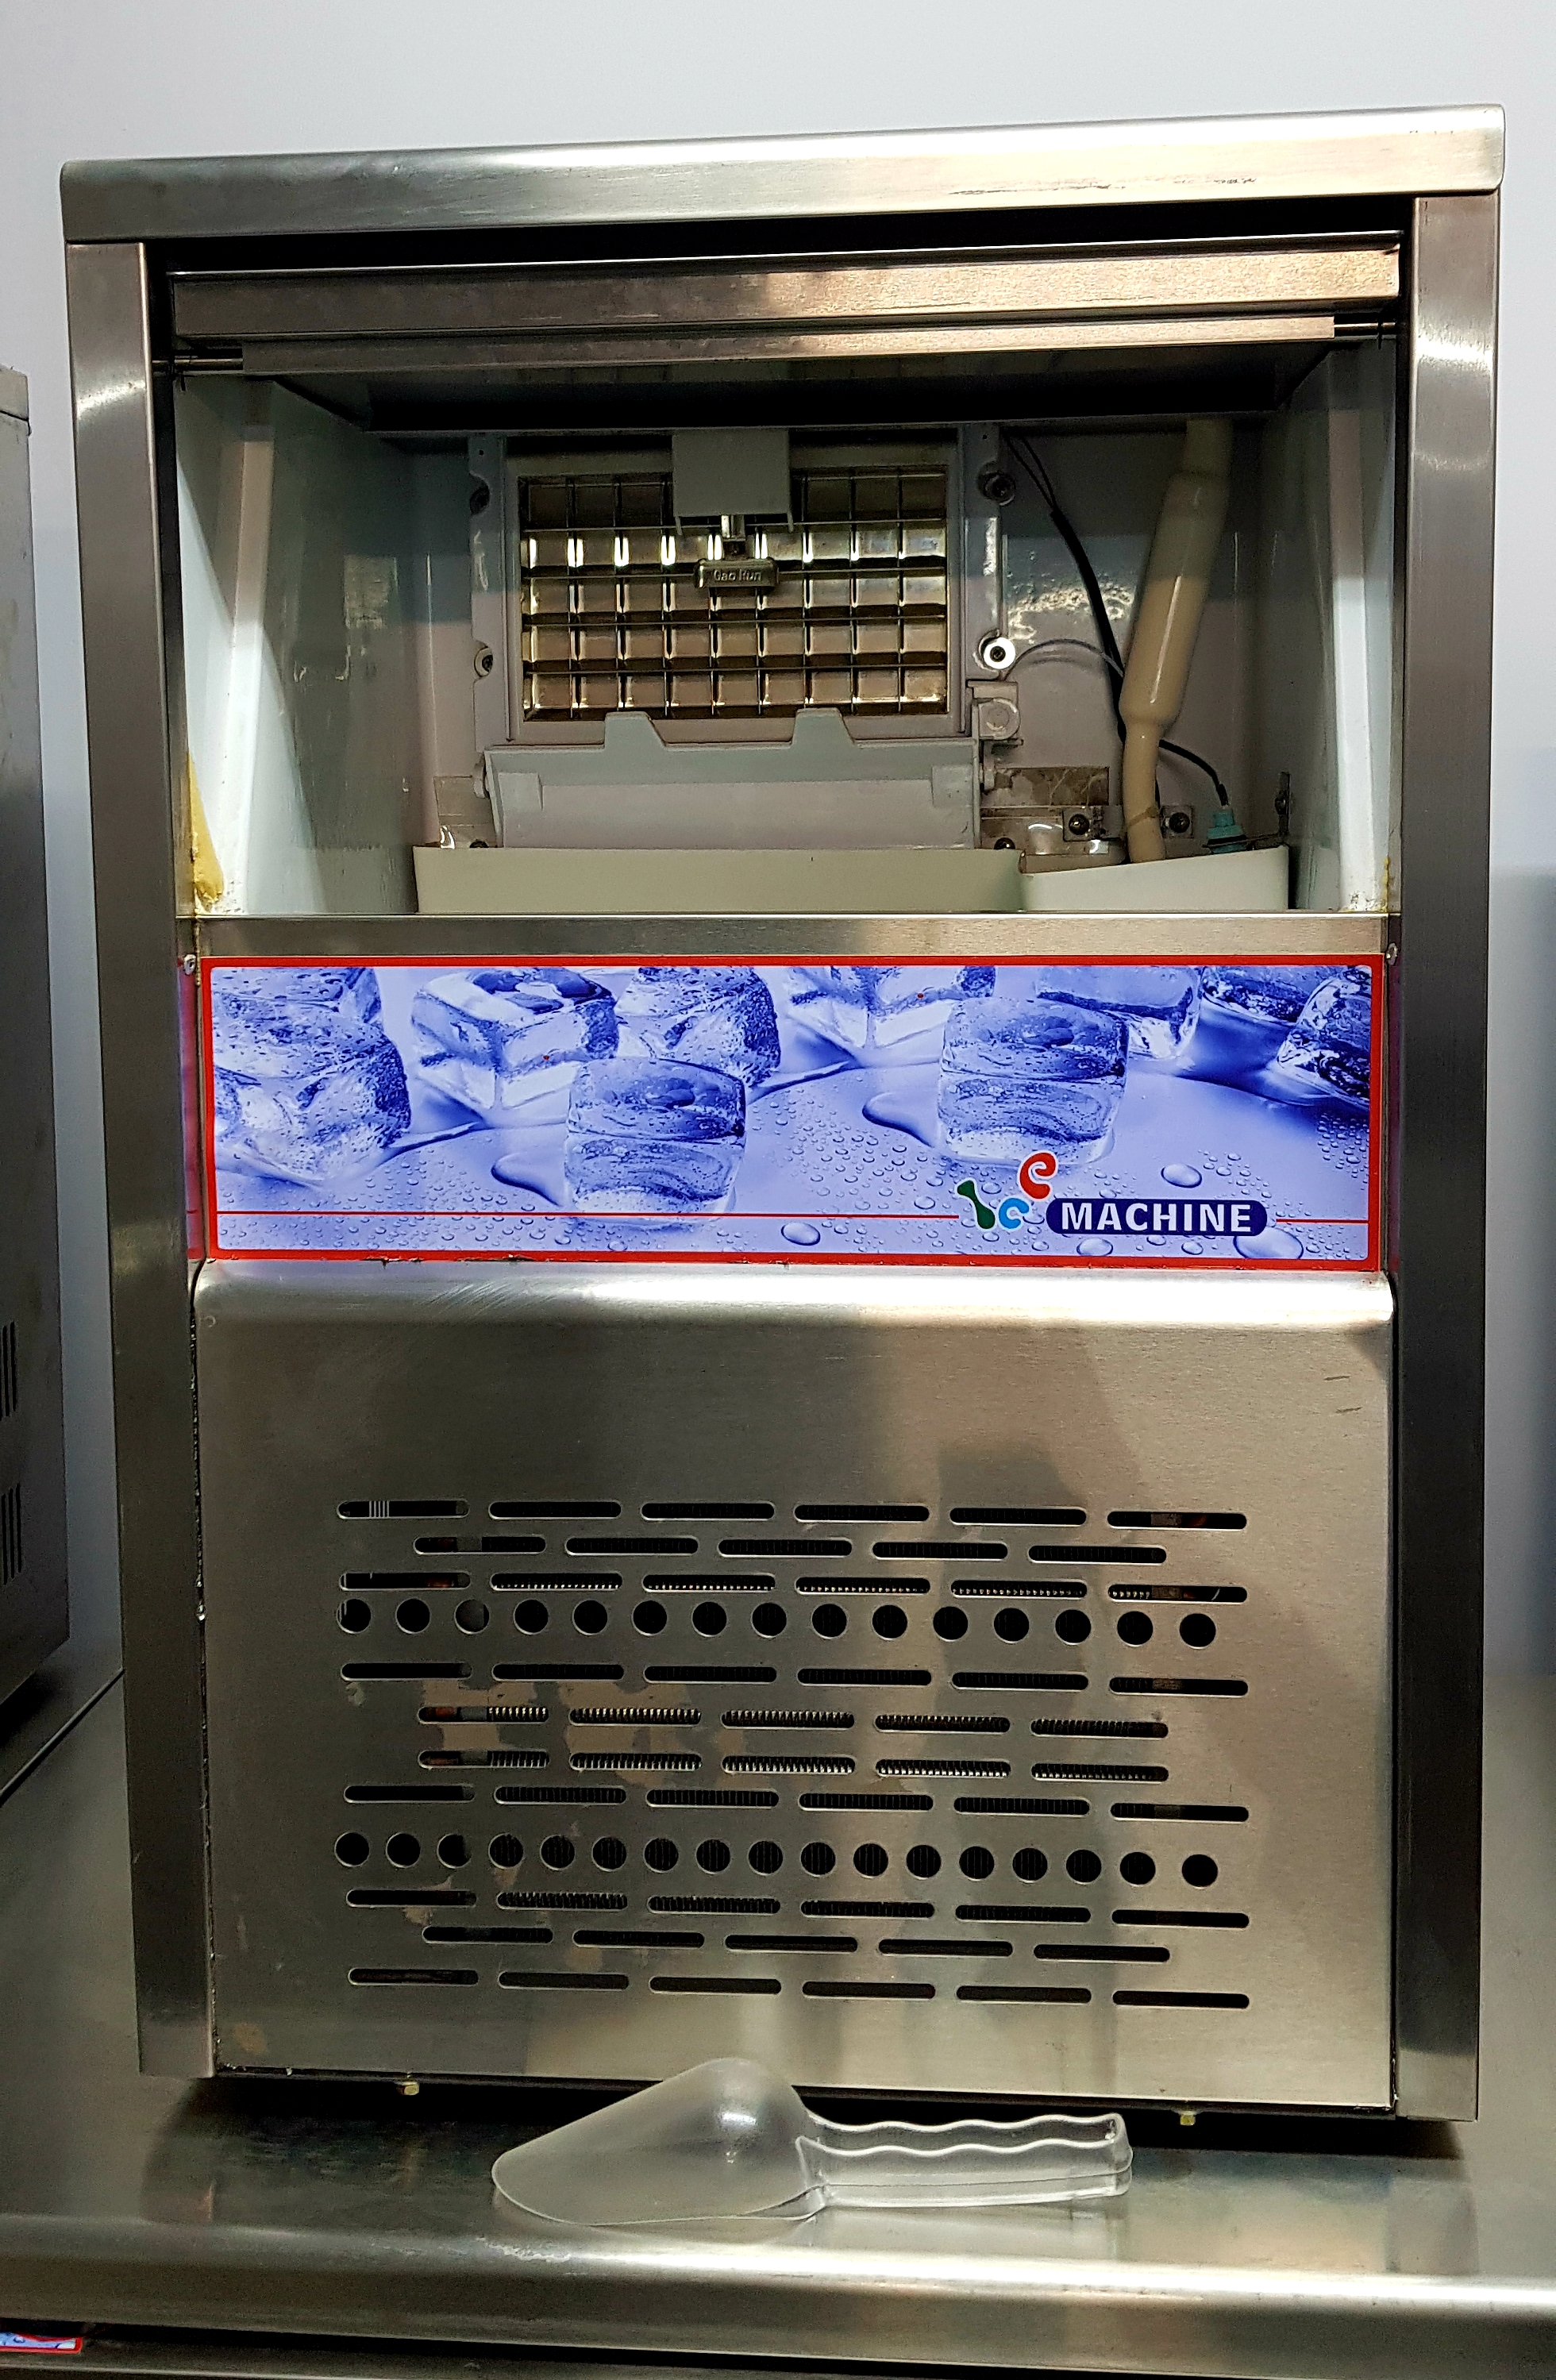 Ice Maker Machine Ice Maker Ice Machine Ice Maker For Sale Ice Machine For Sale Sunrose Online Jhb Commercial Bakery Butchery Catering Refrigeration Equipment